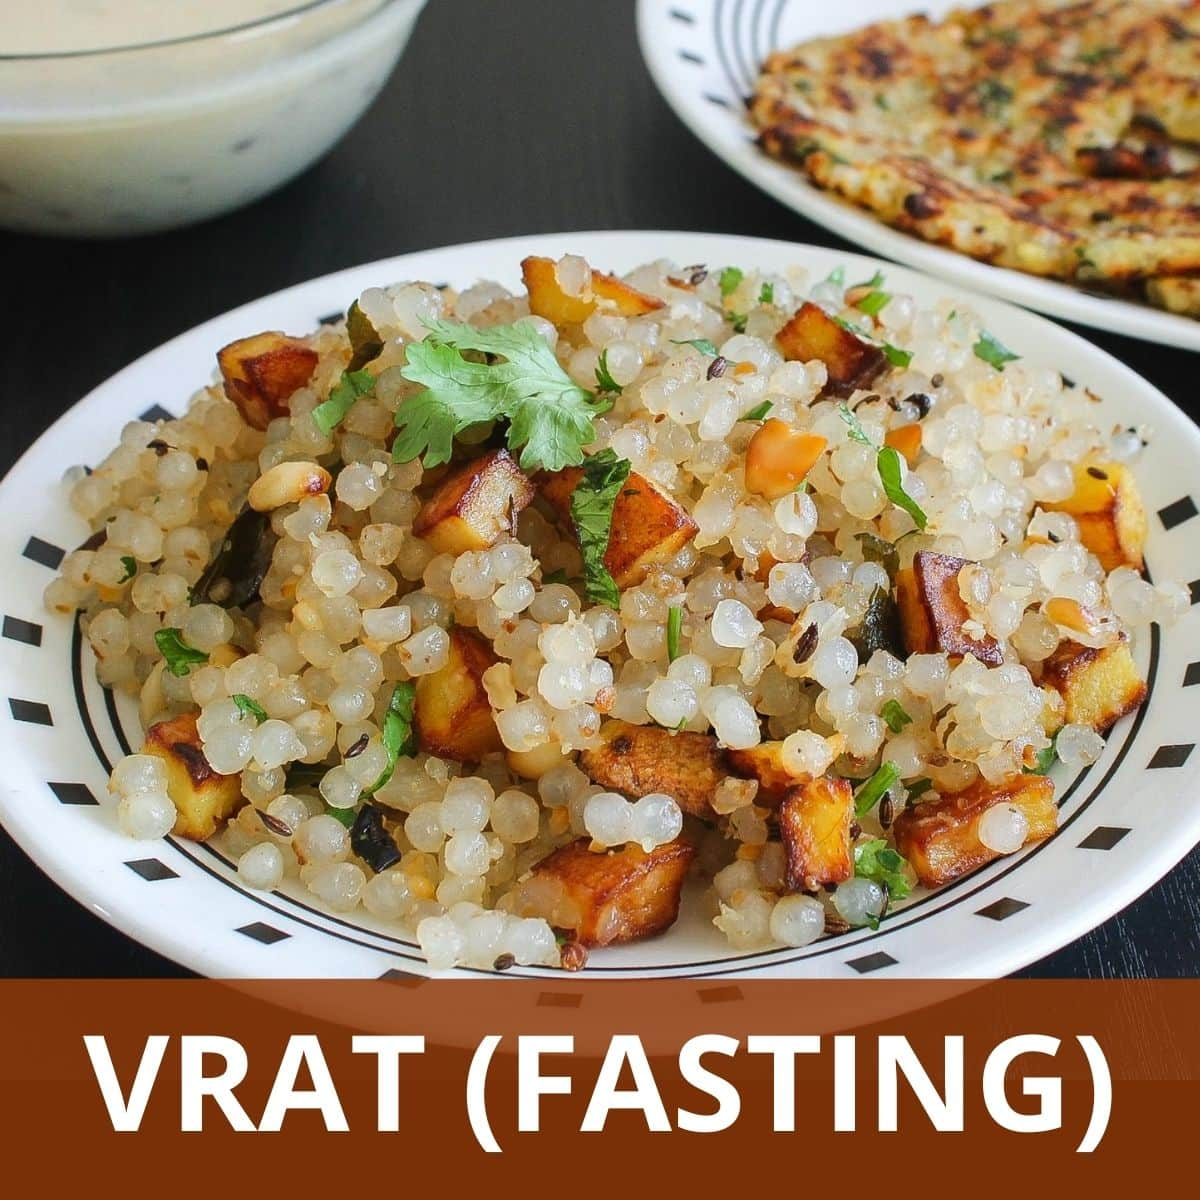 Fasting (Vrat) Recipes